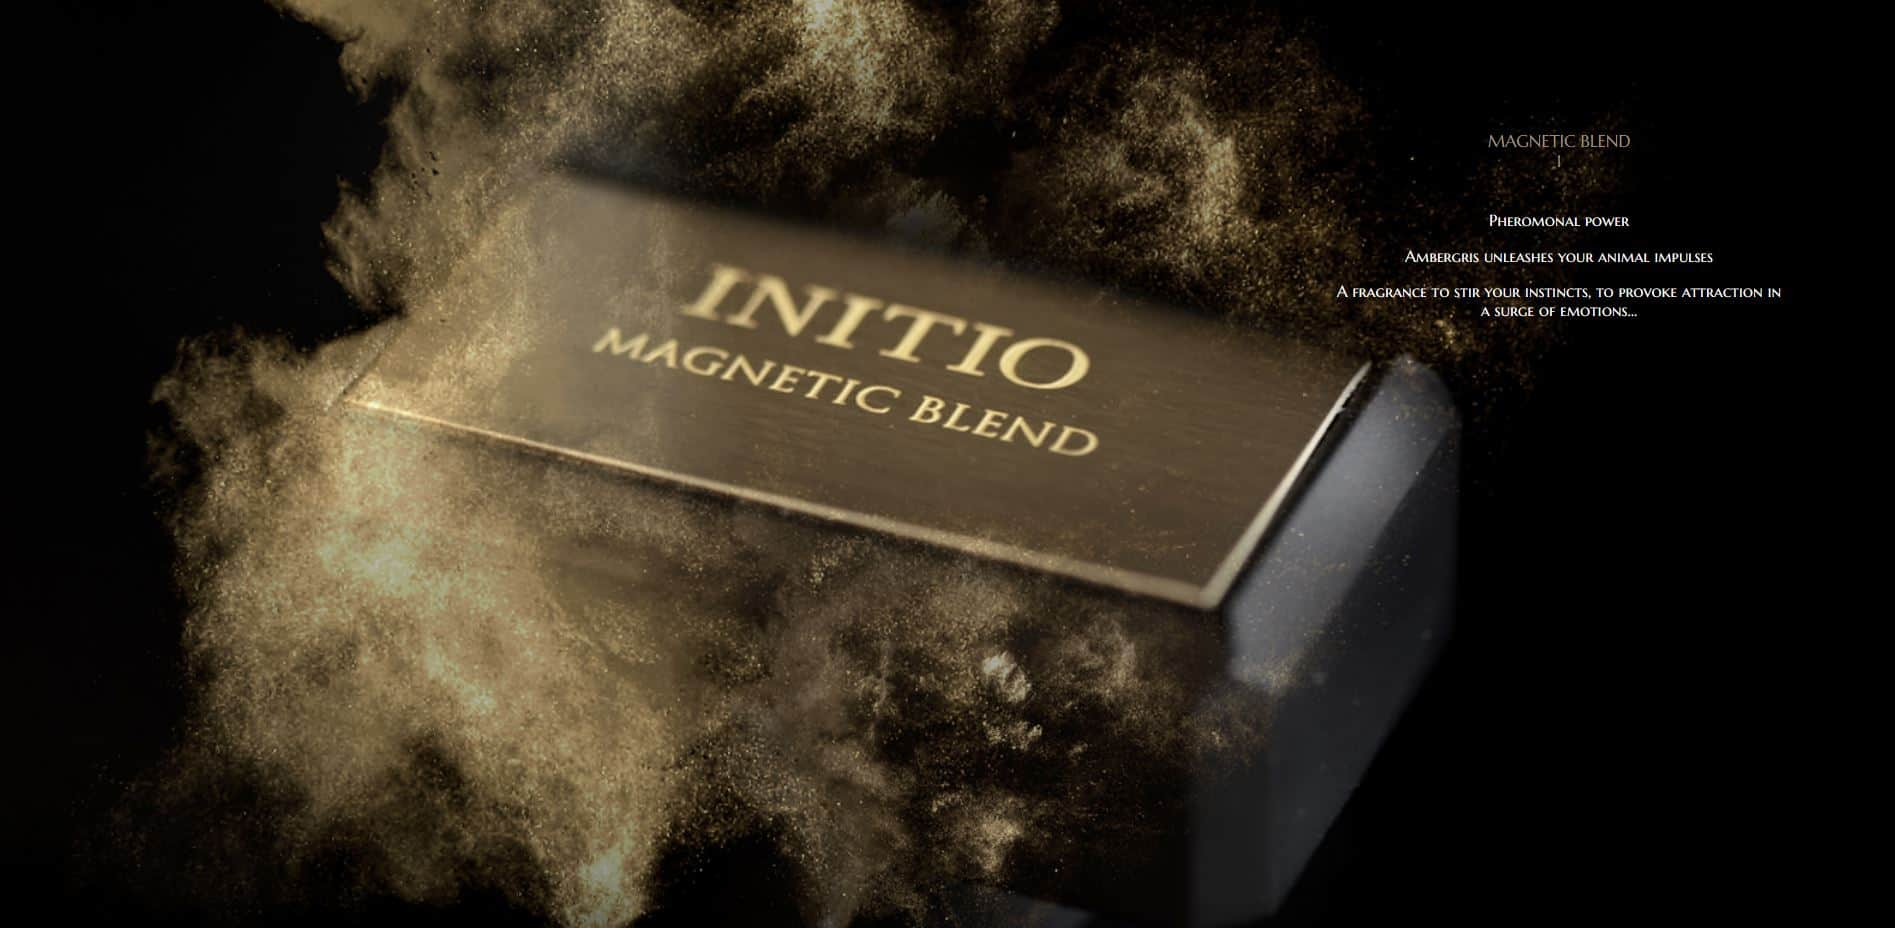 Initio_MagneticBlend2